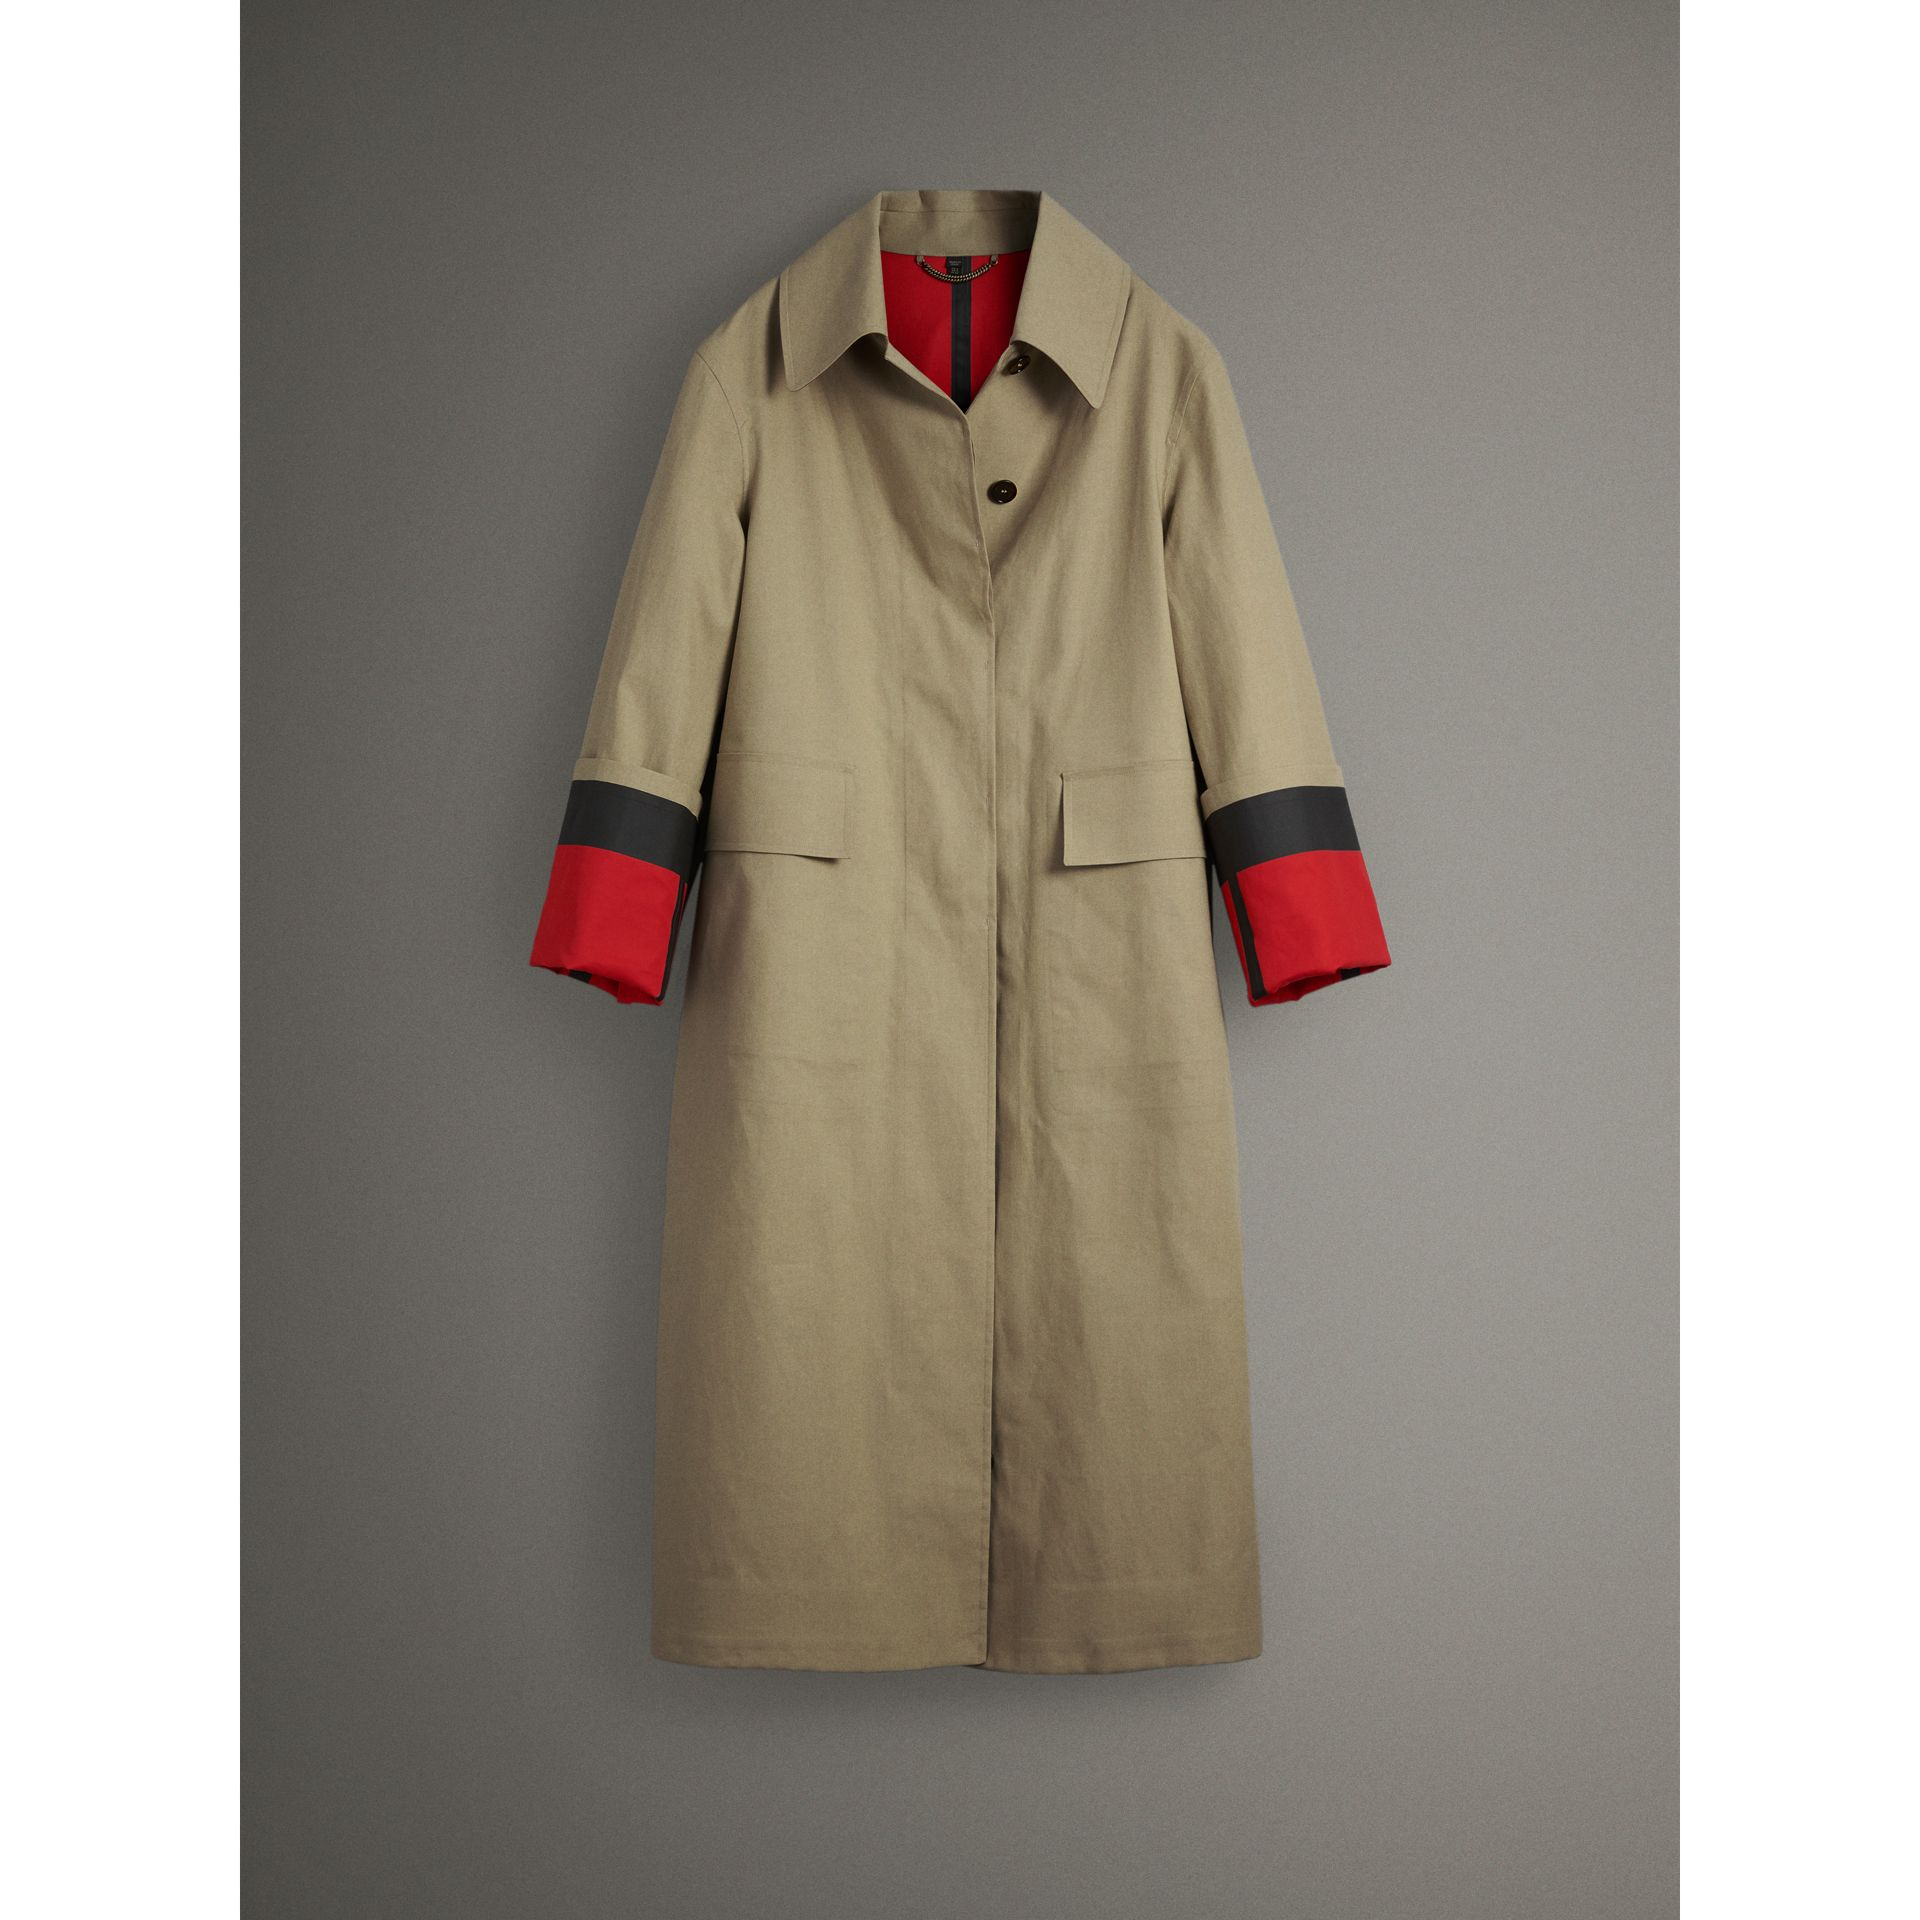 Bonded Cotton Poplin Seam-sealed Car Coat in Beige/red - Women | Burberry Hong Kong - gallery image 4